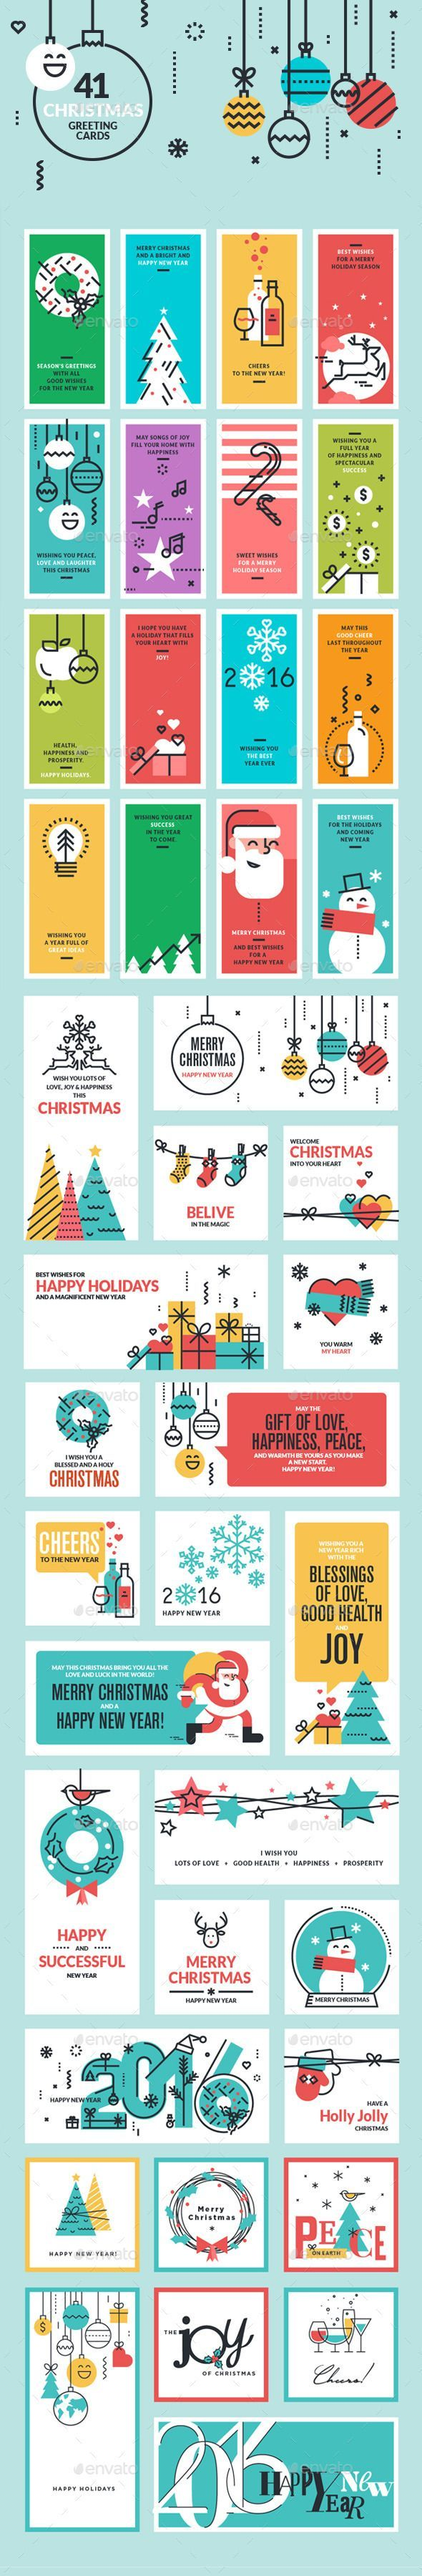 8 Best Christmas Cards Images On Pinterest Christmas Cards Xmas